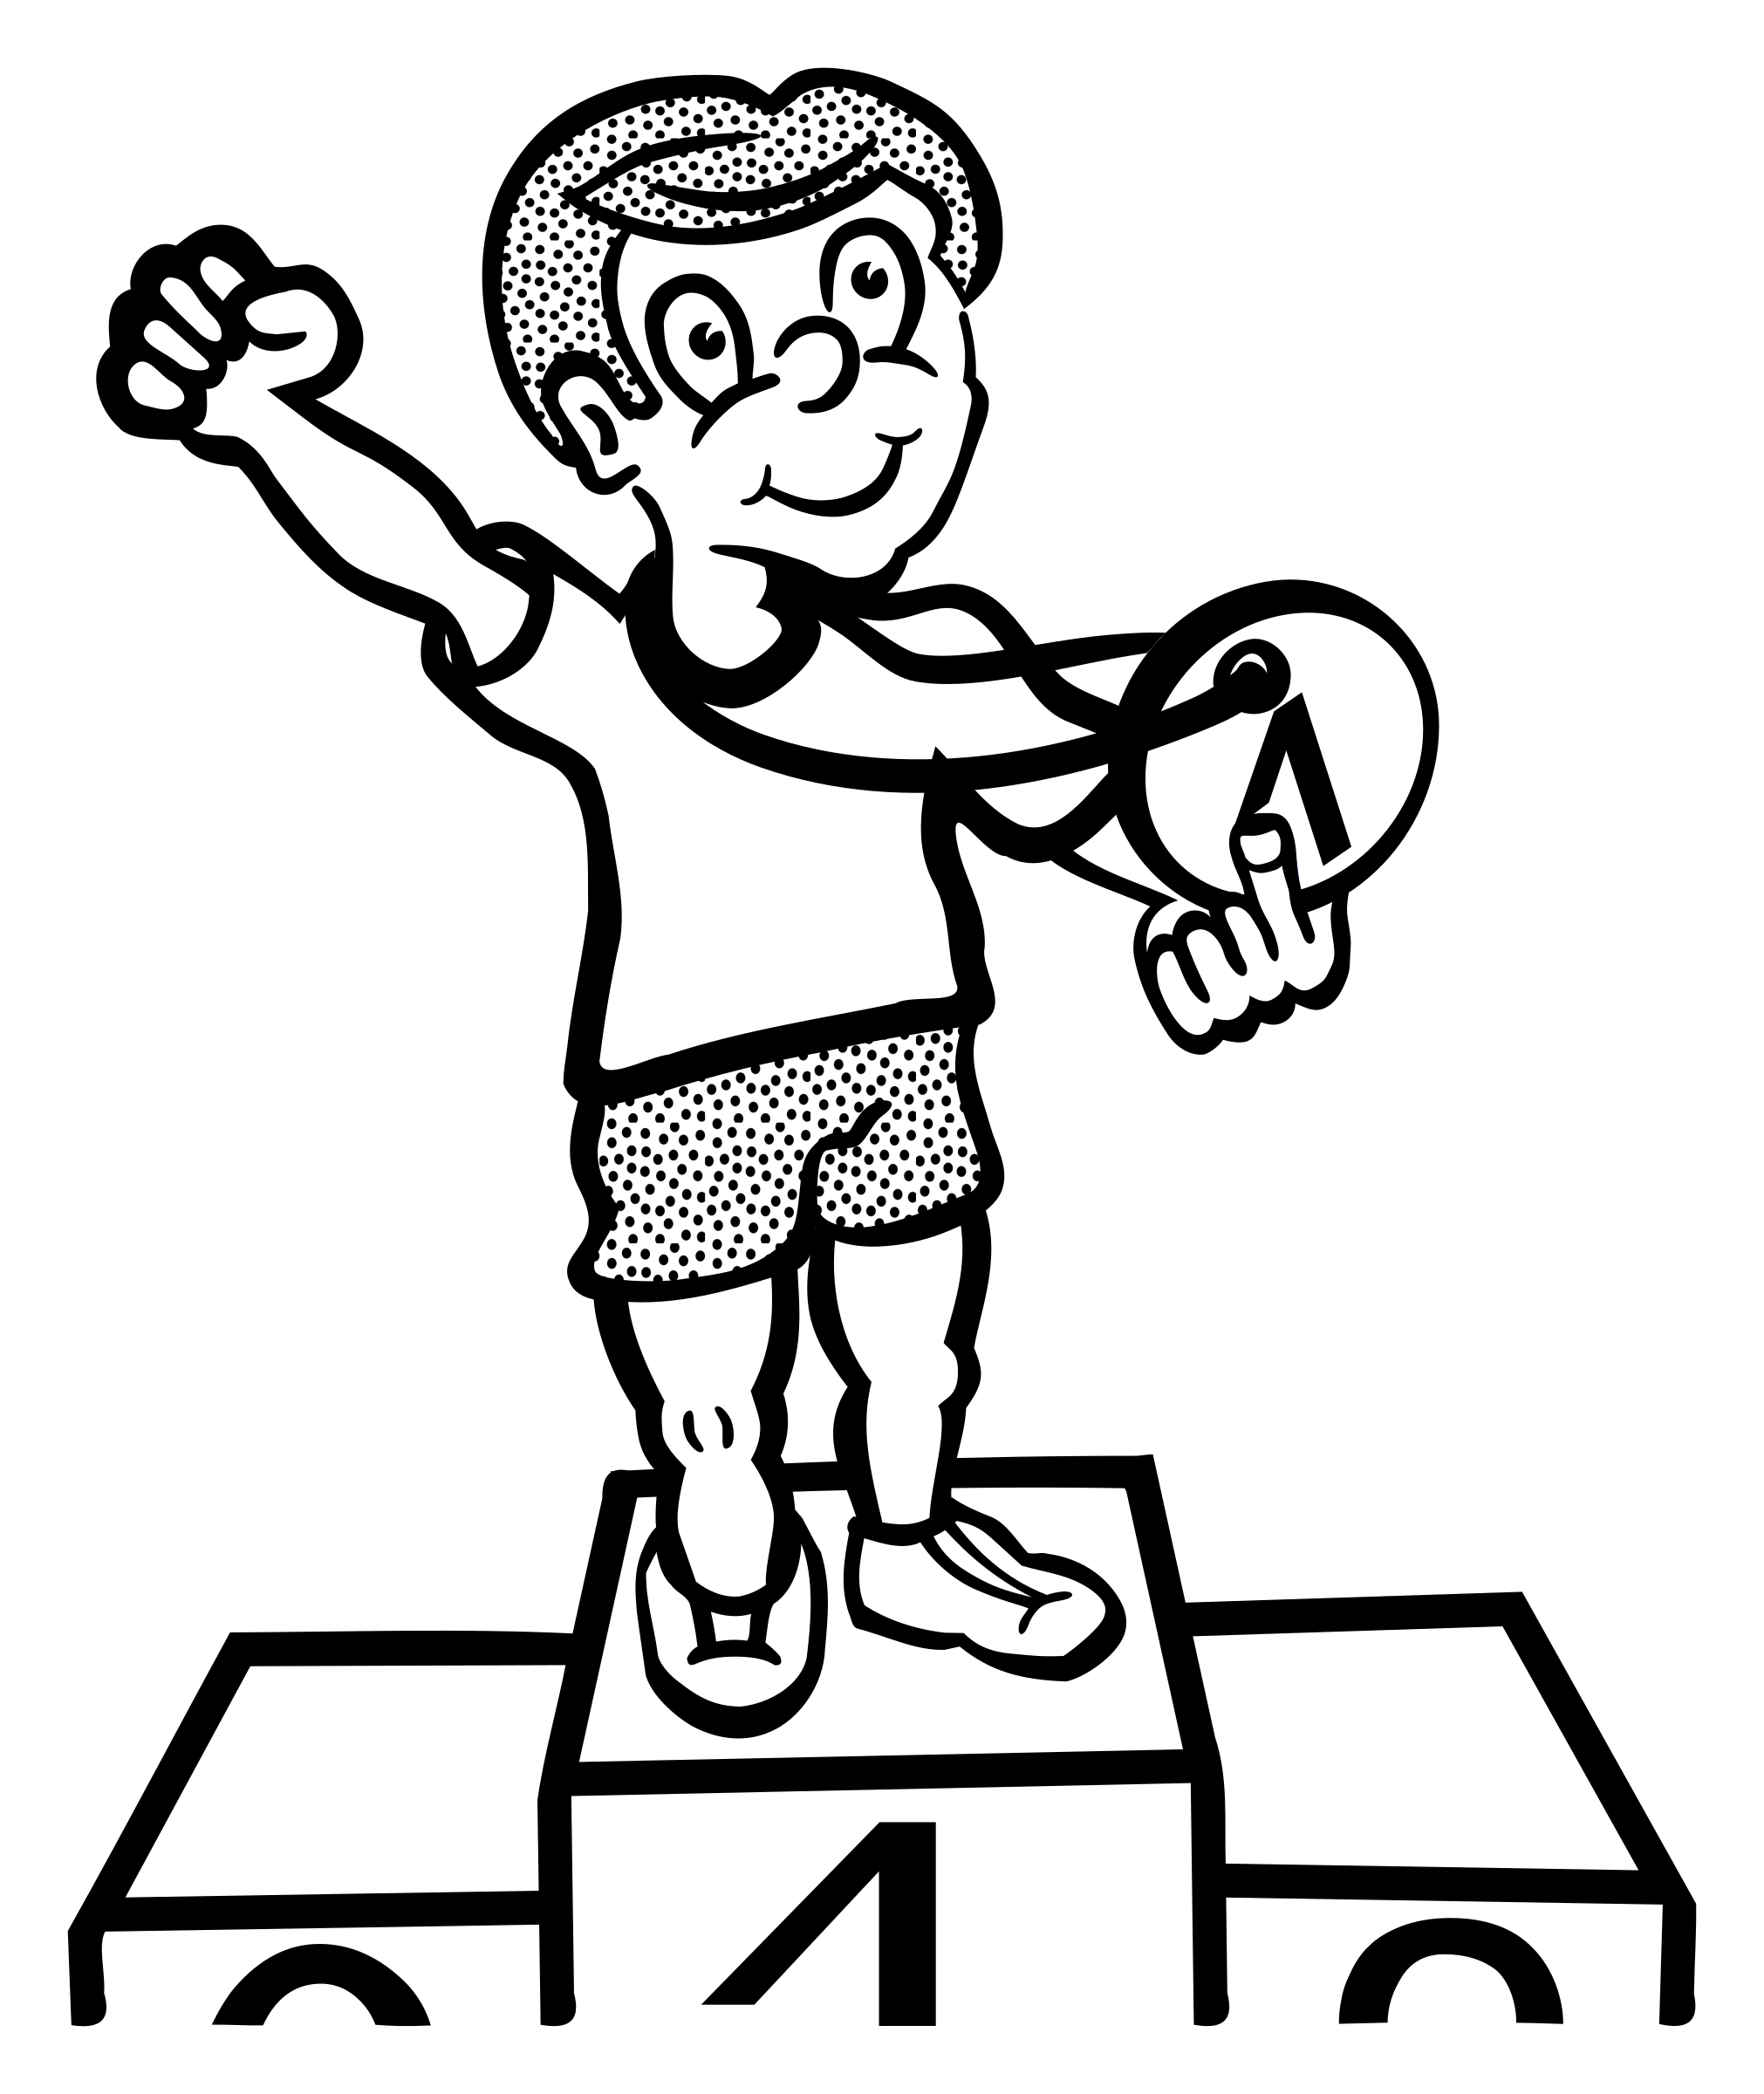 Cartoon Turbo also Running For It Vector Drawing Silhouette Jog Run 1130583 besides Bamboo Lover Panda Coloring Pages 1d677 further Checker Flag Race Checkered Flag 1648337 furthermore Corredor Ganador Llegando A La Meta 10525. on race winner